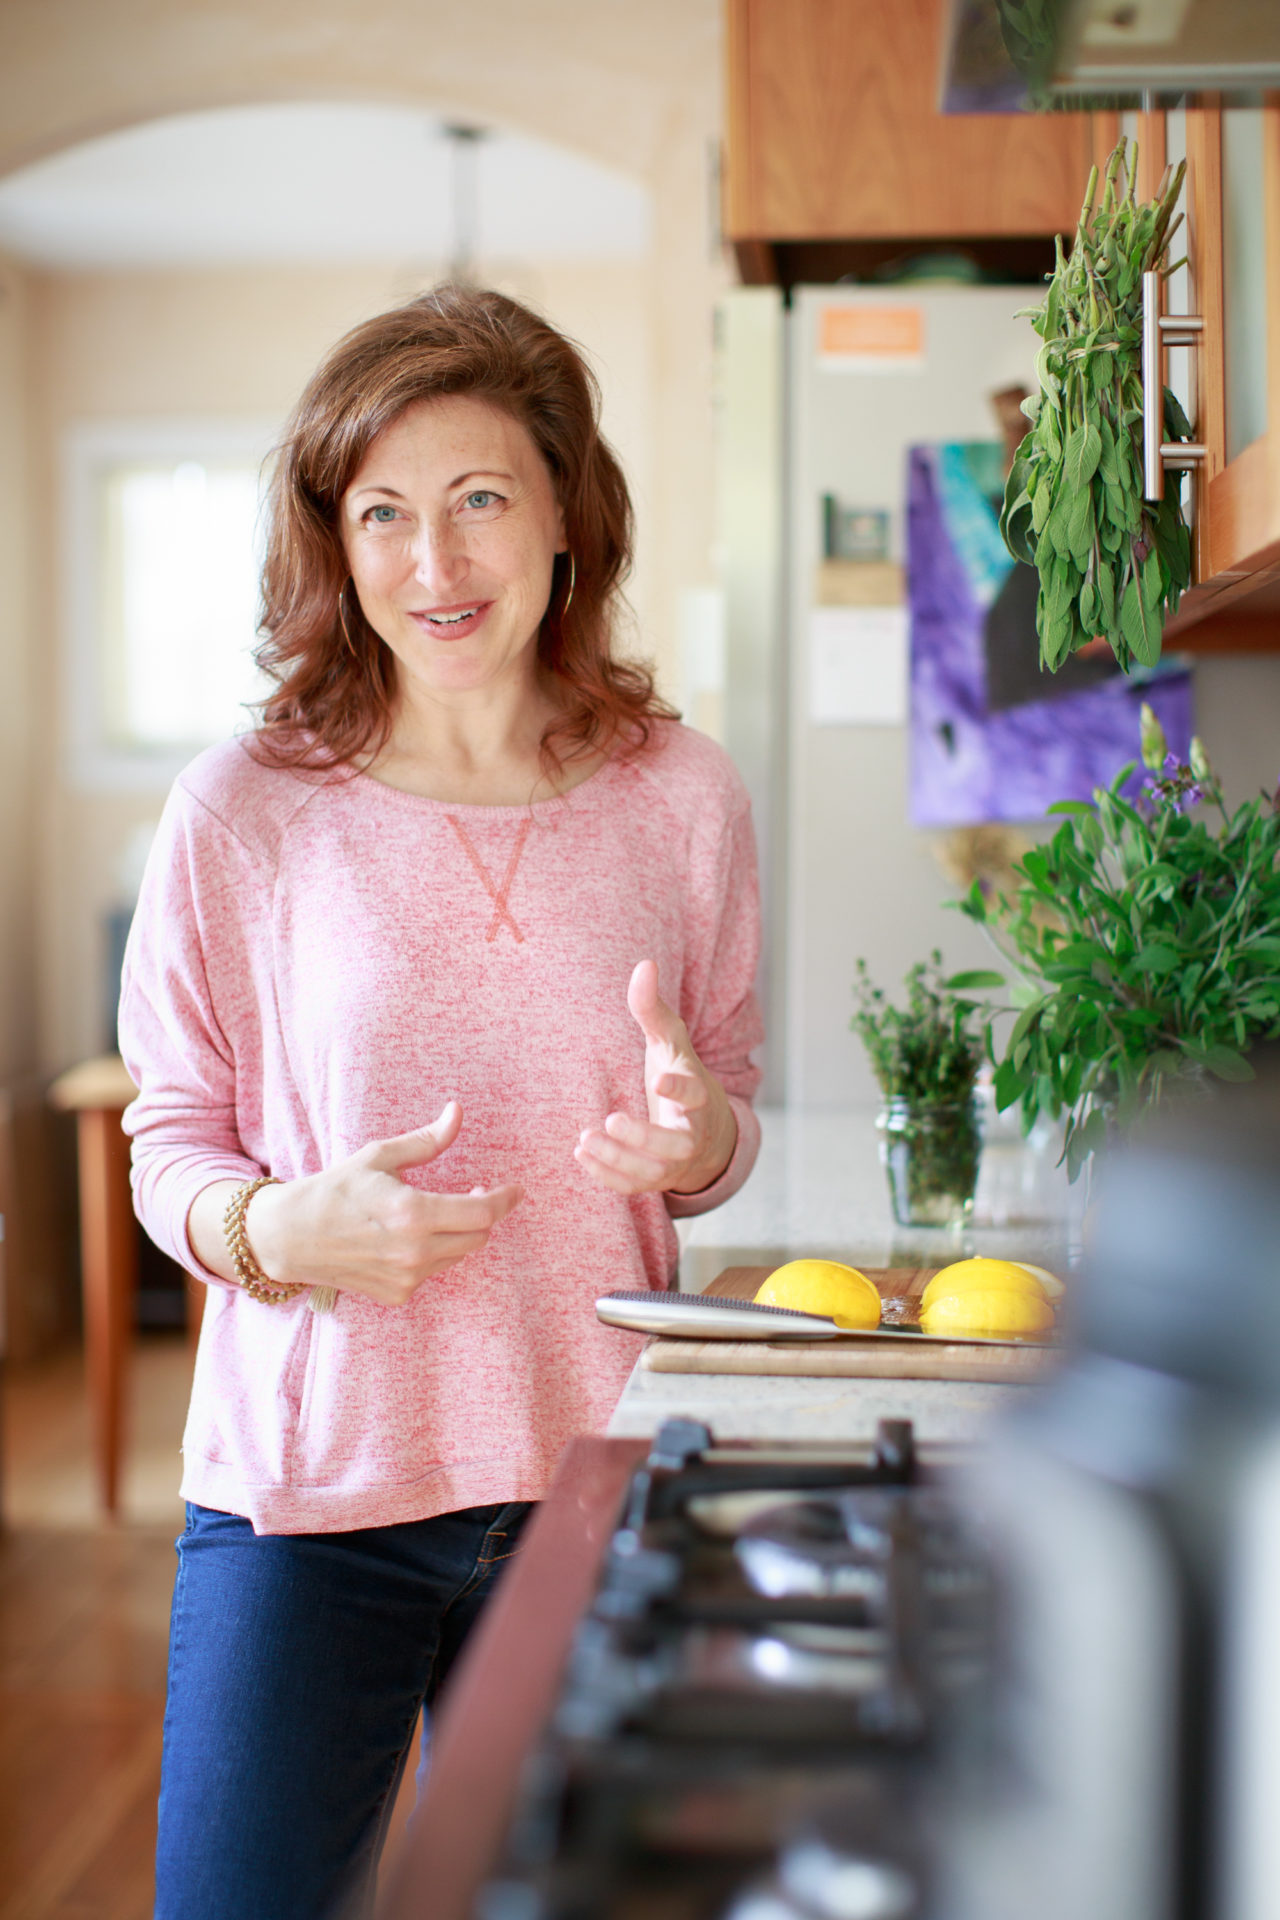 Kate Sadowsky - Ayurveda in the kitchen